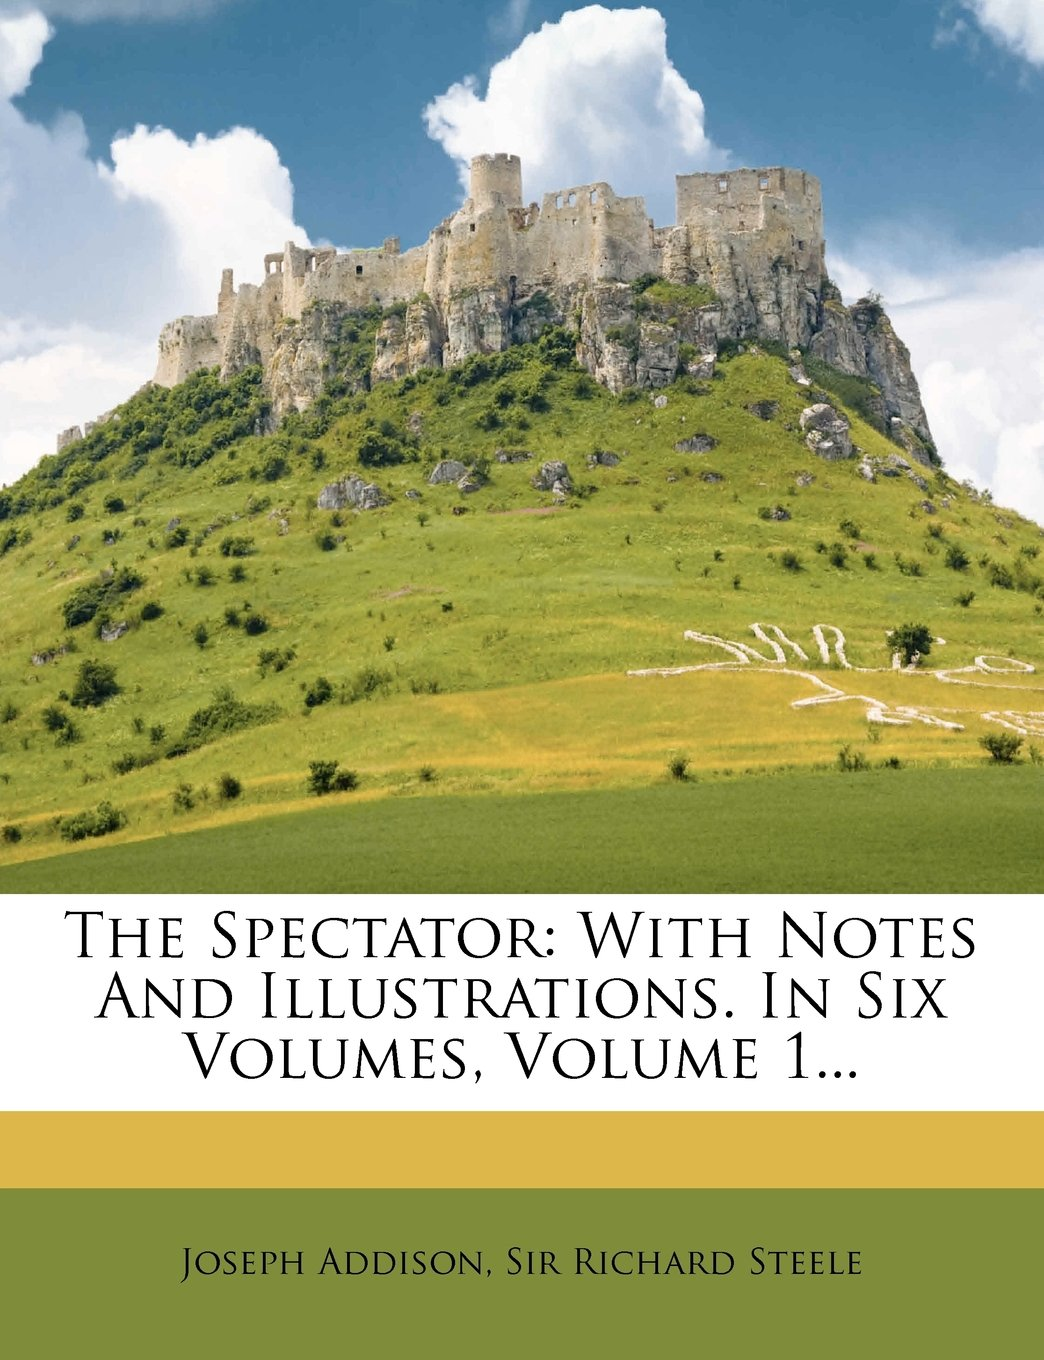 The Spectator: With Notes And Illustrations. In Six Volumes, Volume 1... pdf